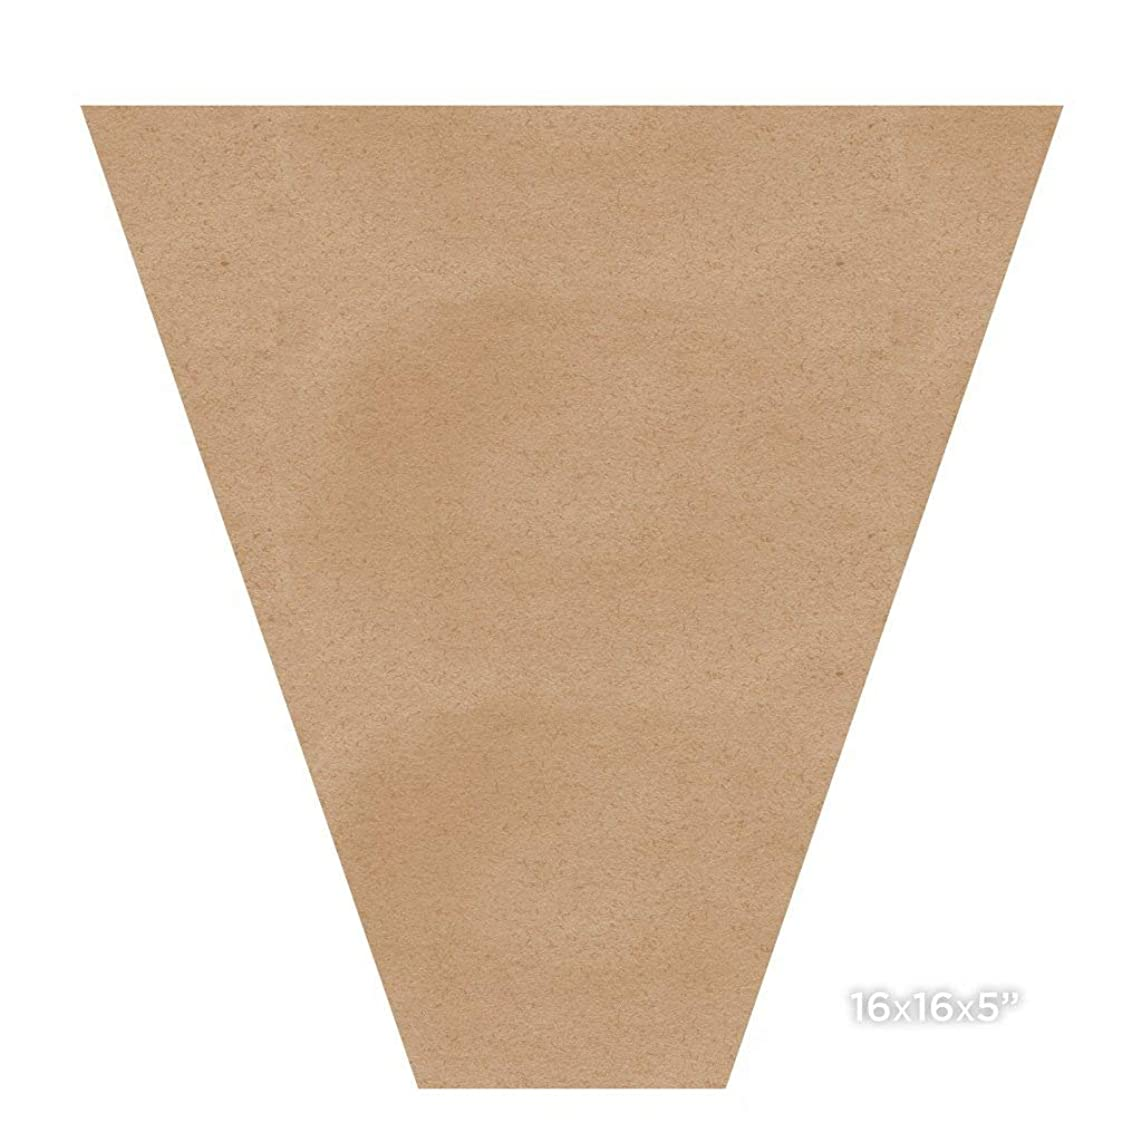 Kraft Paper Bouquet Sleeves - Brown Paper Bouquet - Paper Sleeves (16x16x5 in. 10 pcs)